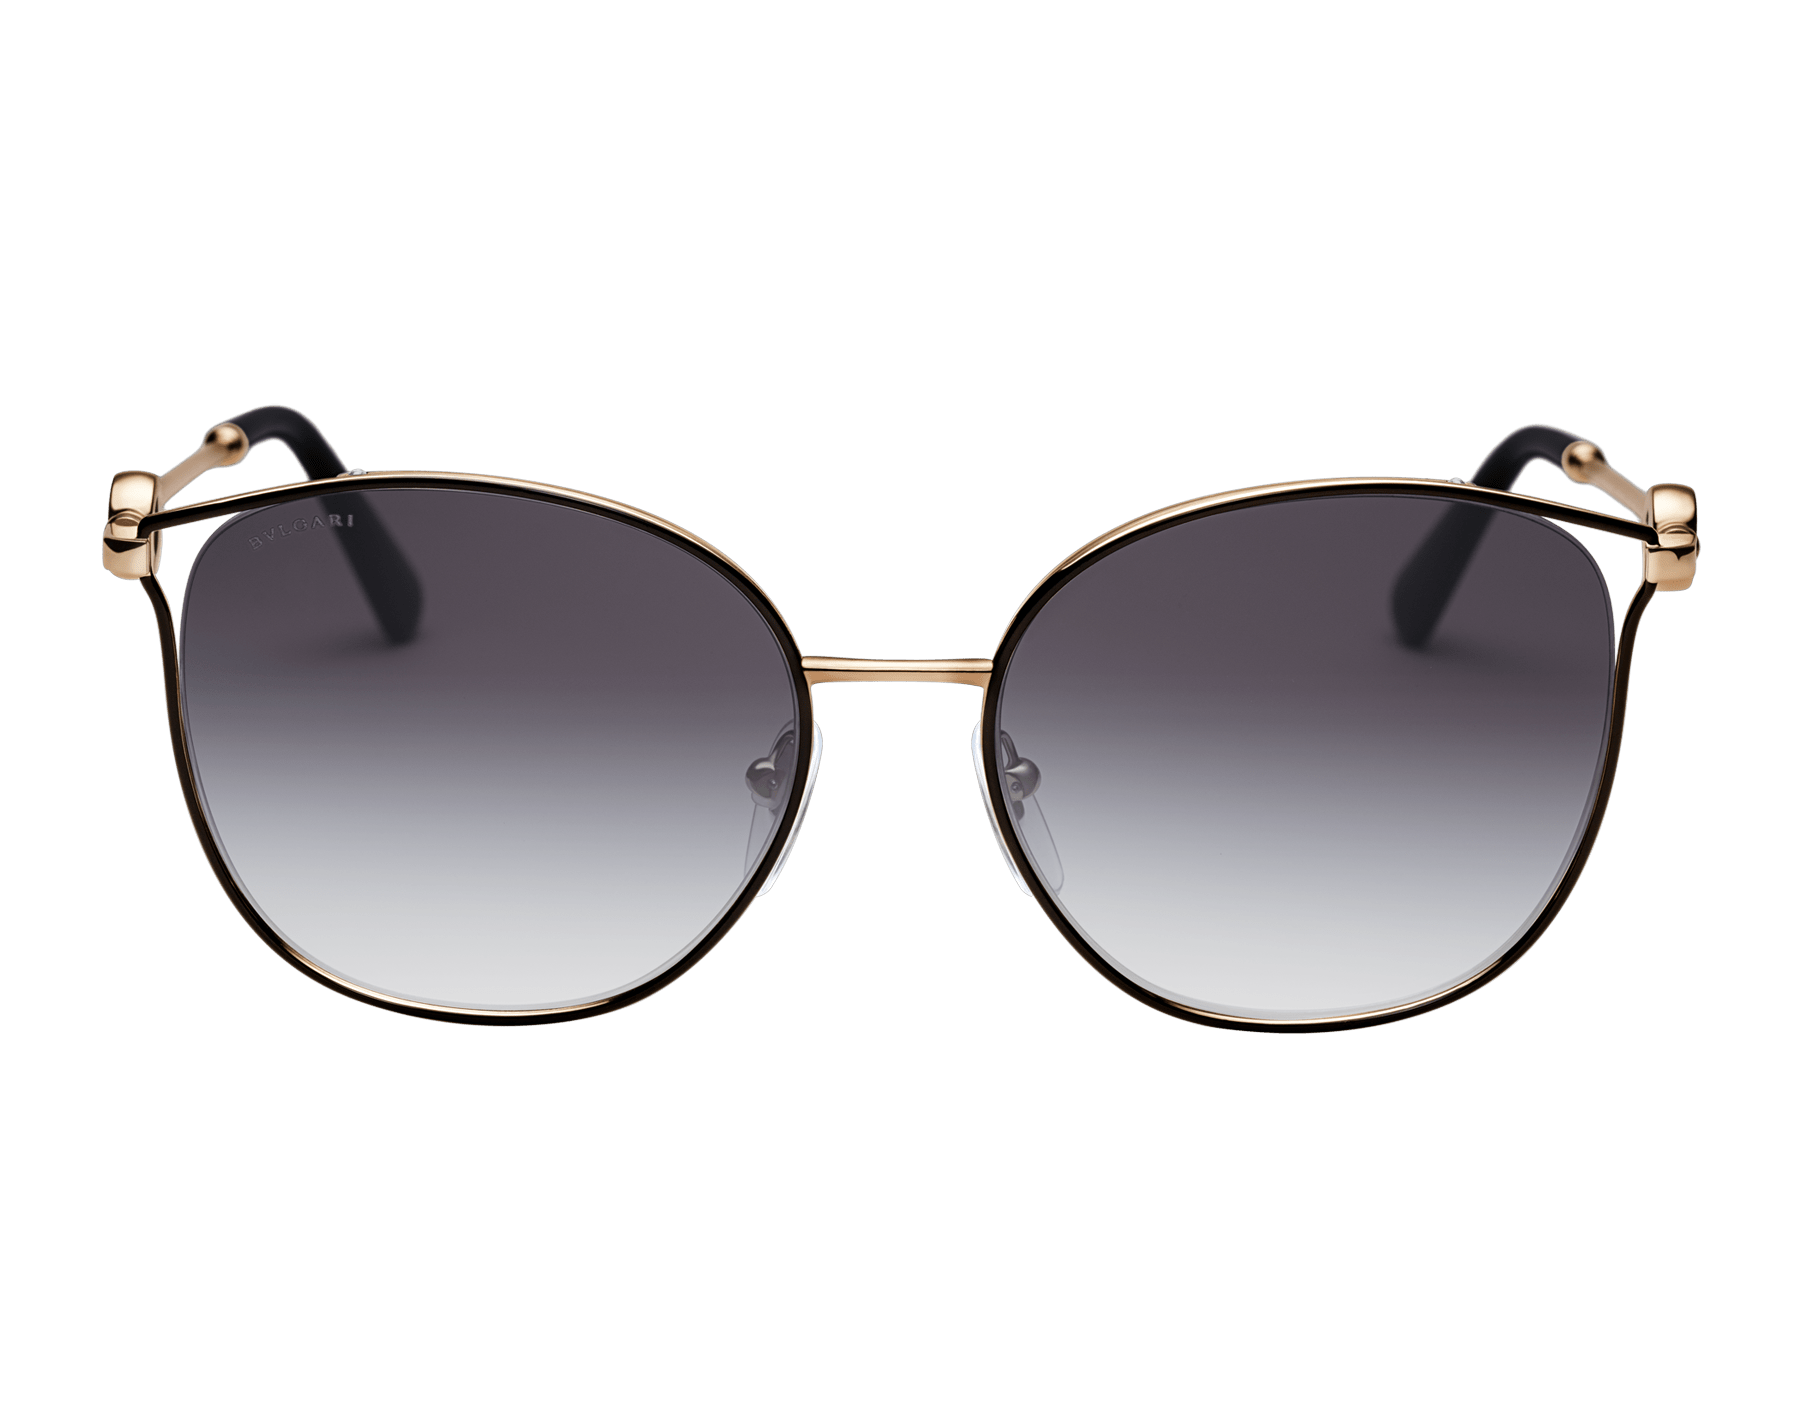 BVLGARI BVLGARI rounded cat-eye metal sunglasses 903663 image 2